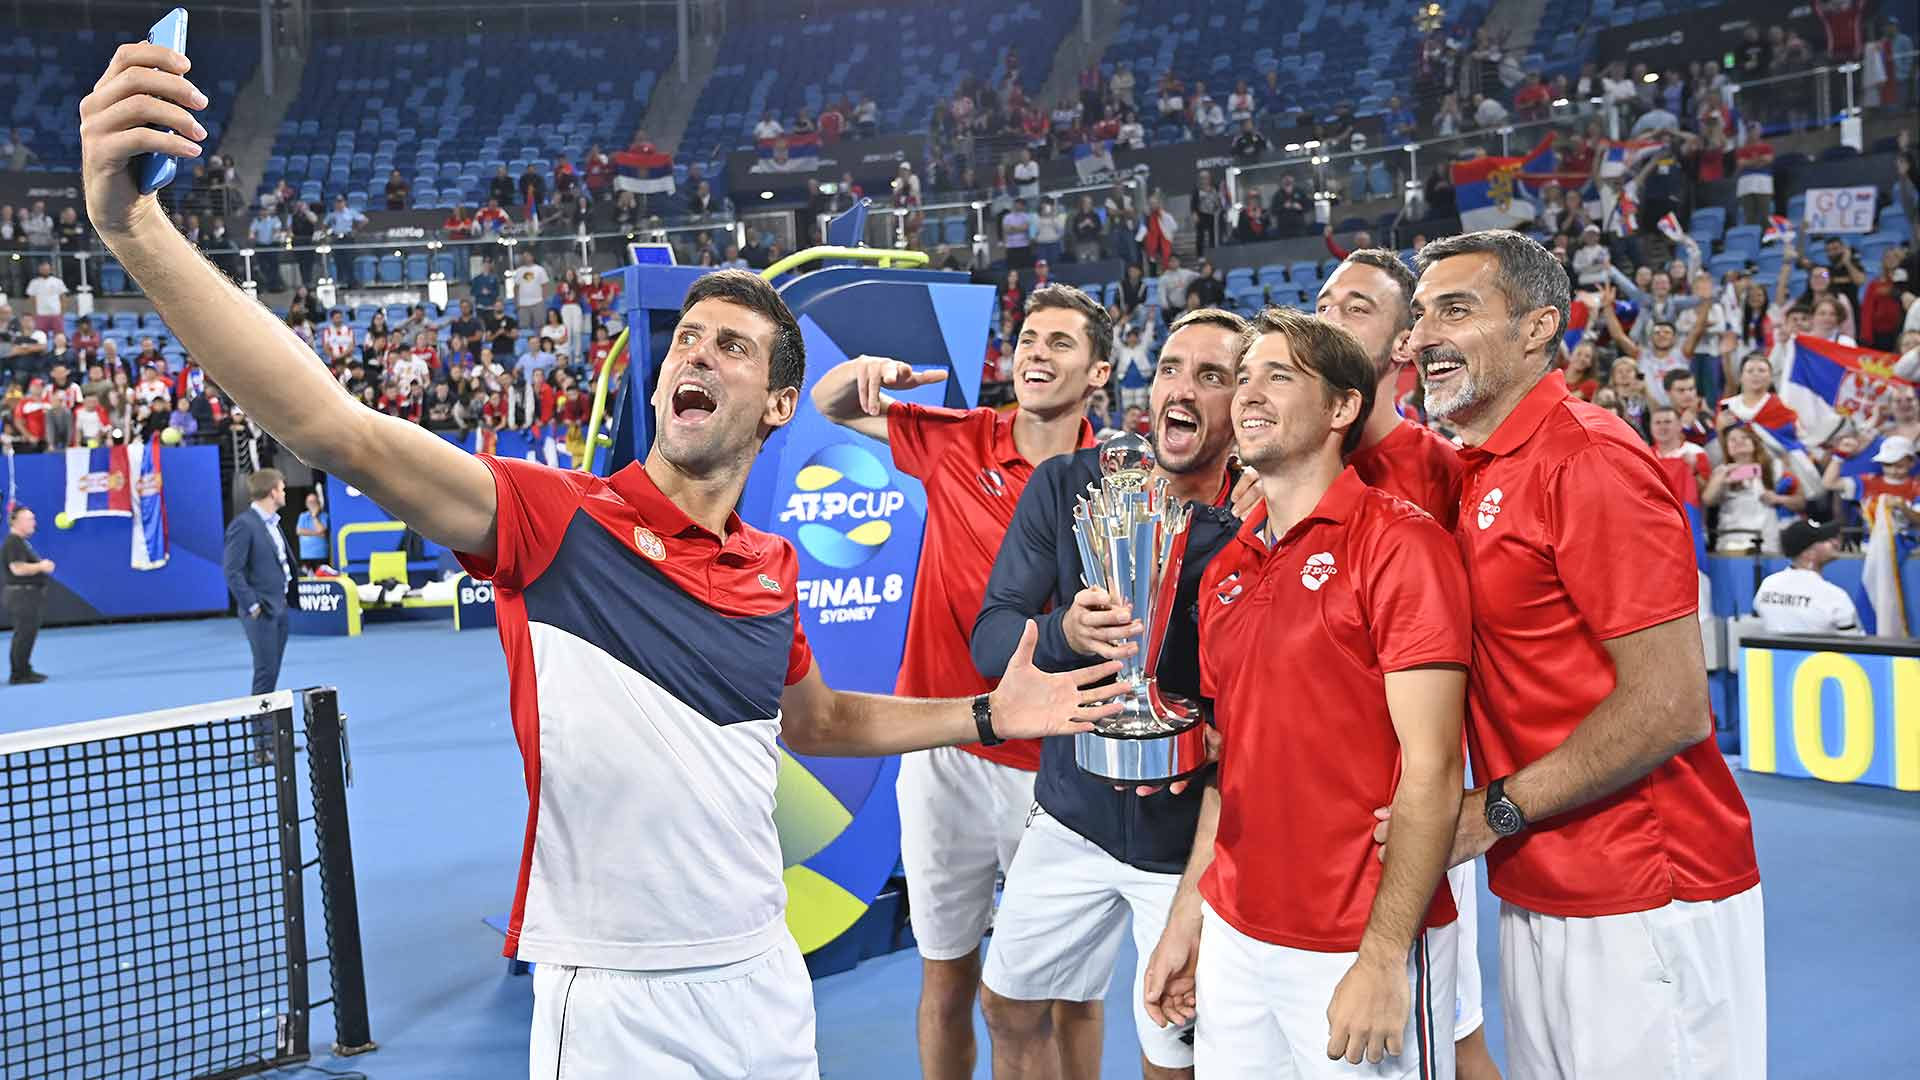 Team Serbia celebrates after beating Team Spain 2-1 to win the <a href='https://www.atptour.com/en/tournaments/atp-cup/8888/overview'>ATP Cup</a>.